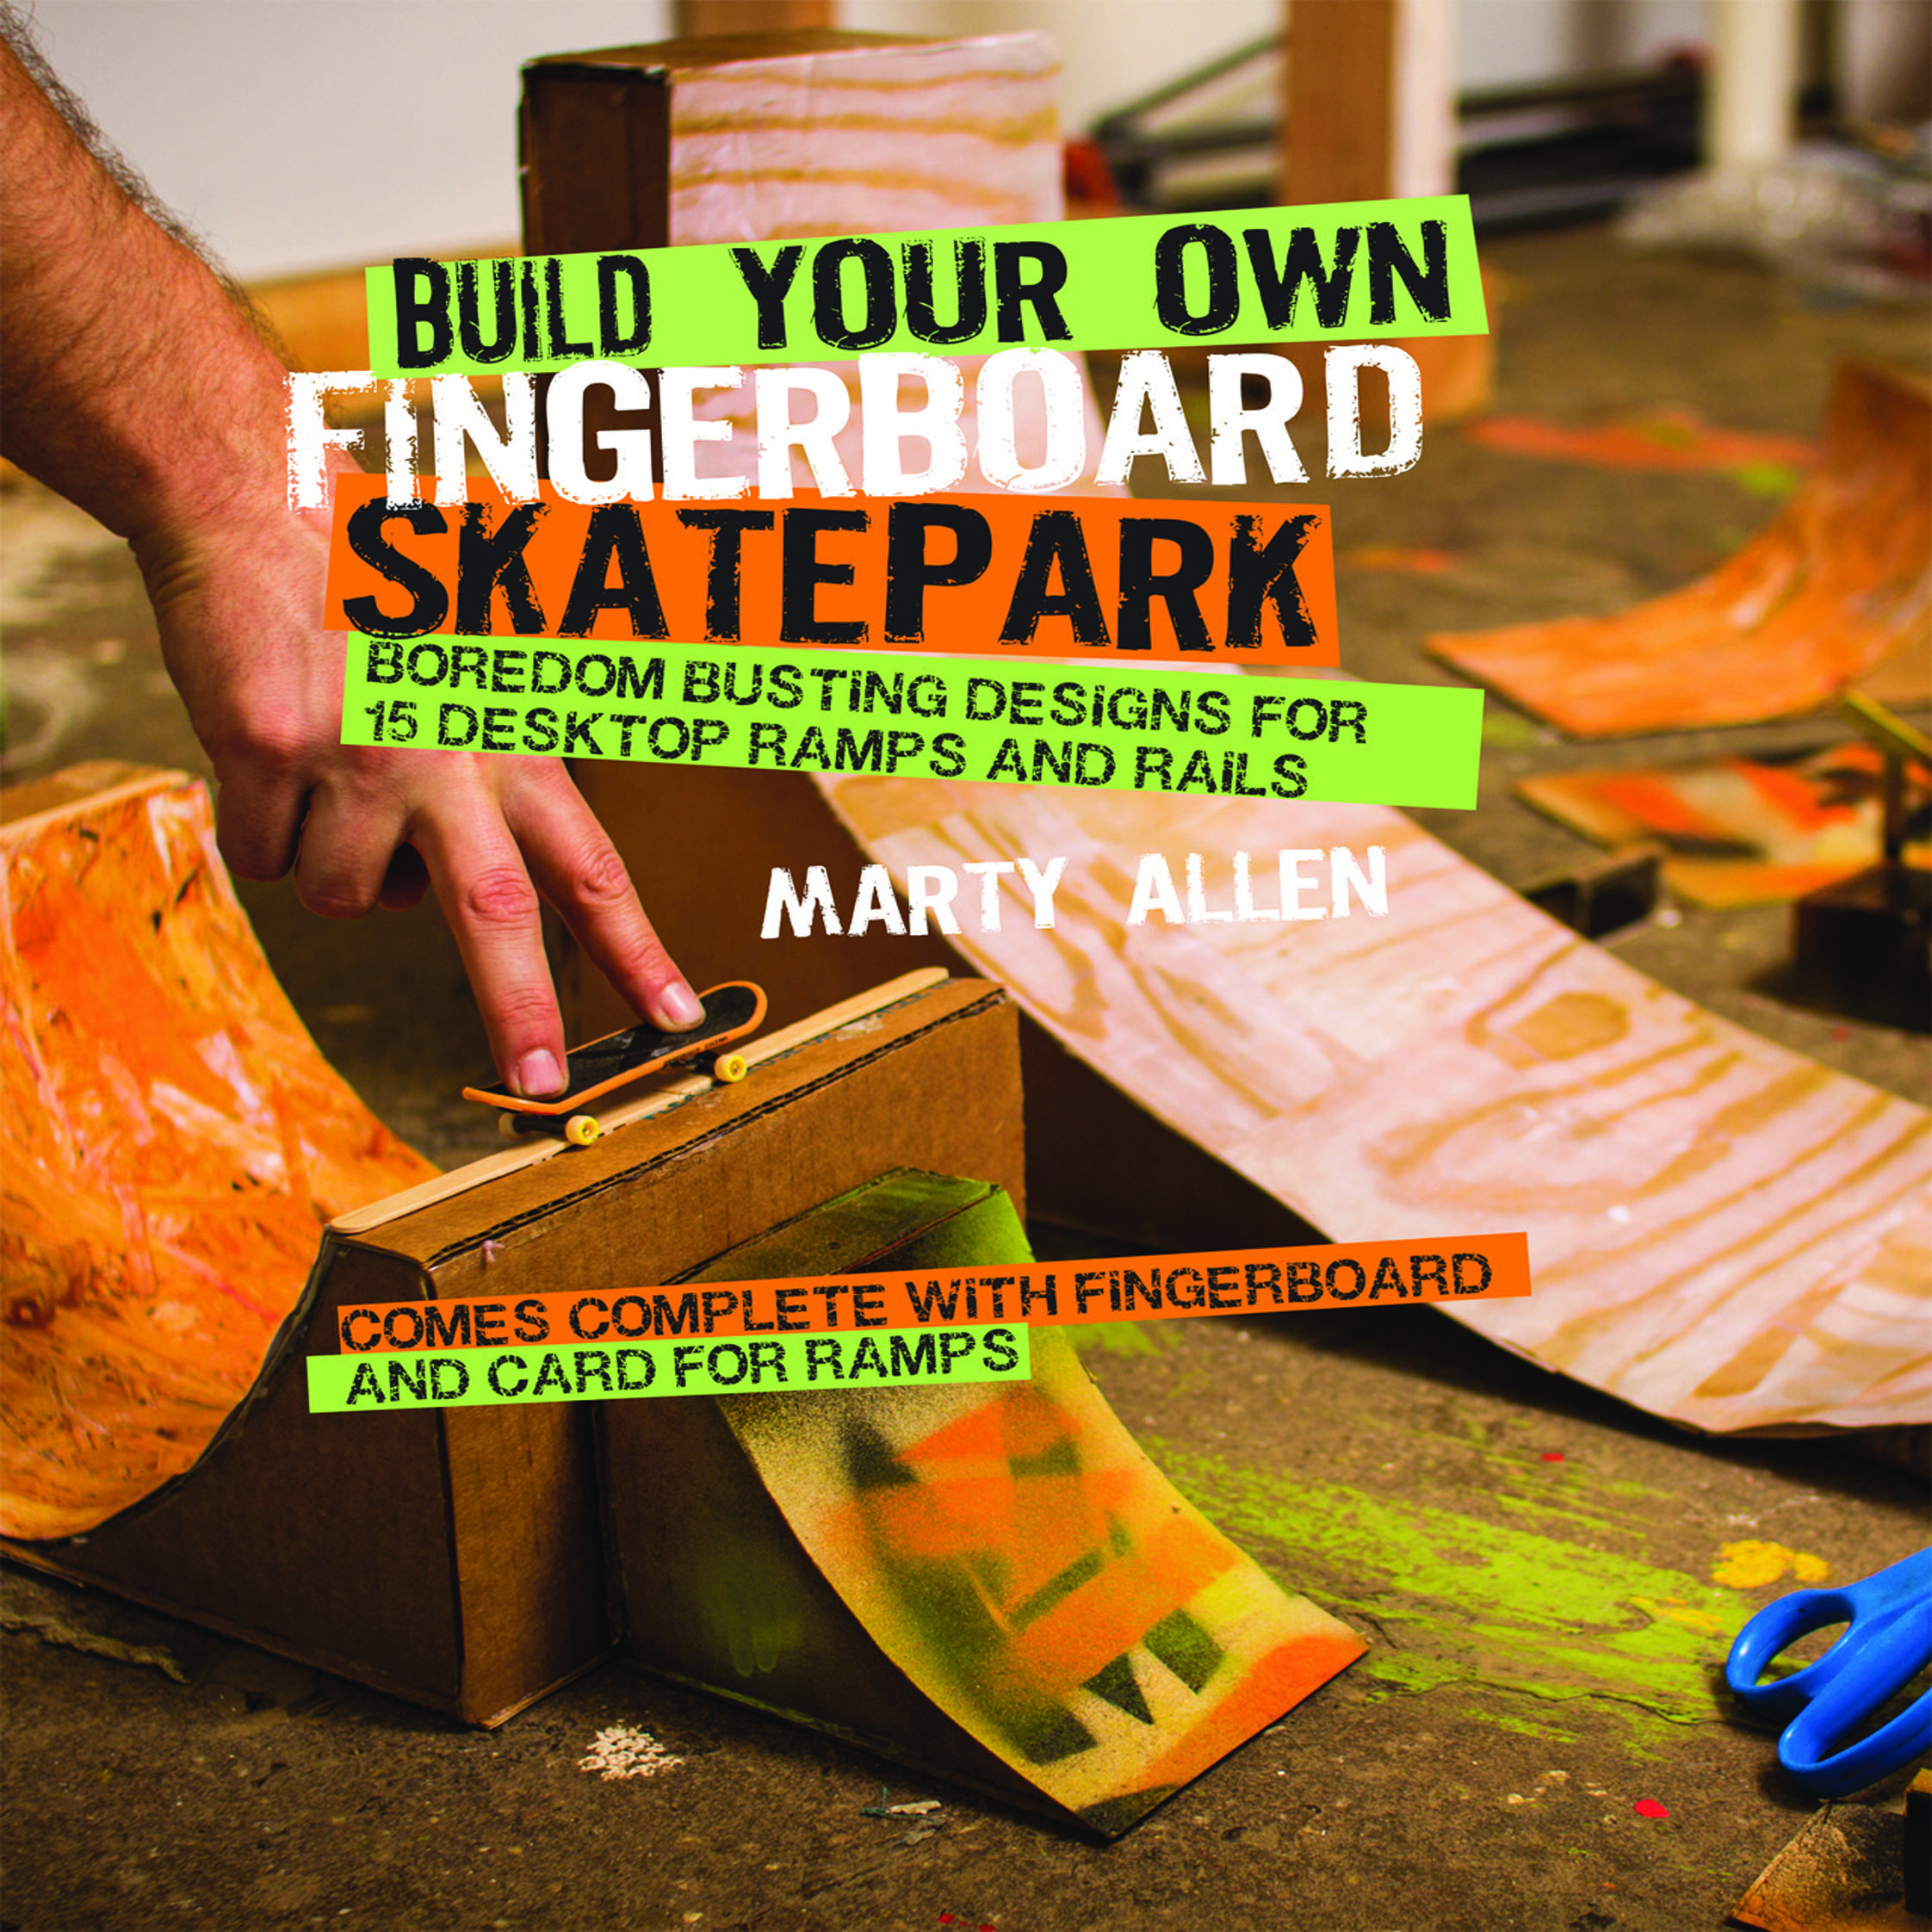 become the tony hawk of the fingerskating world build your own